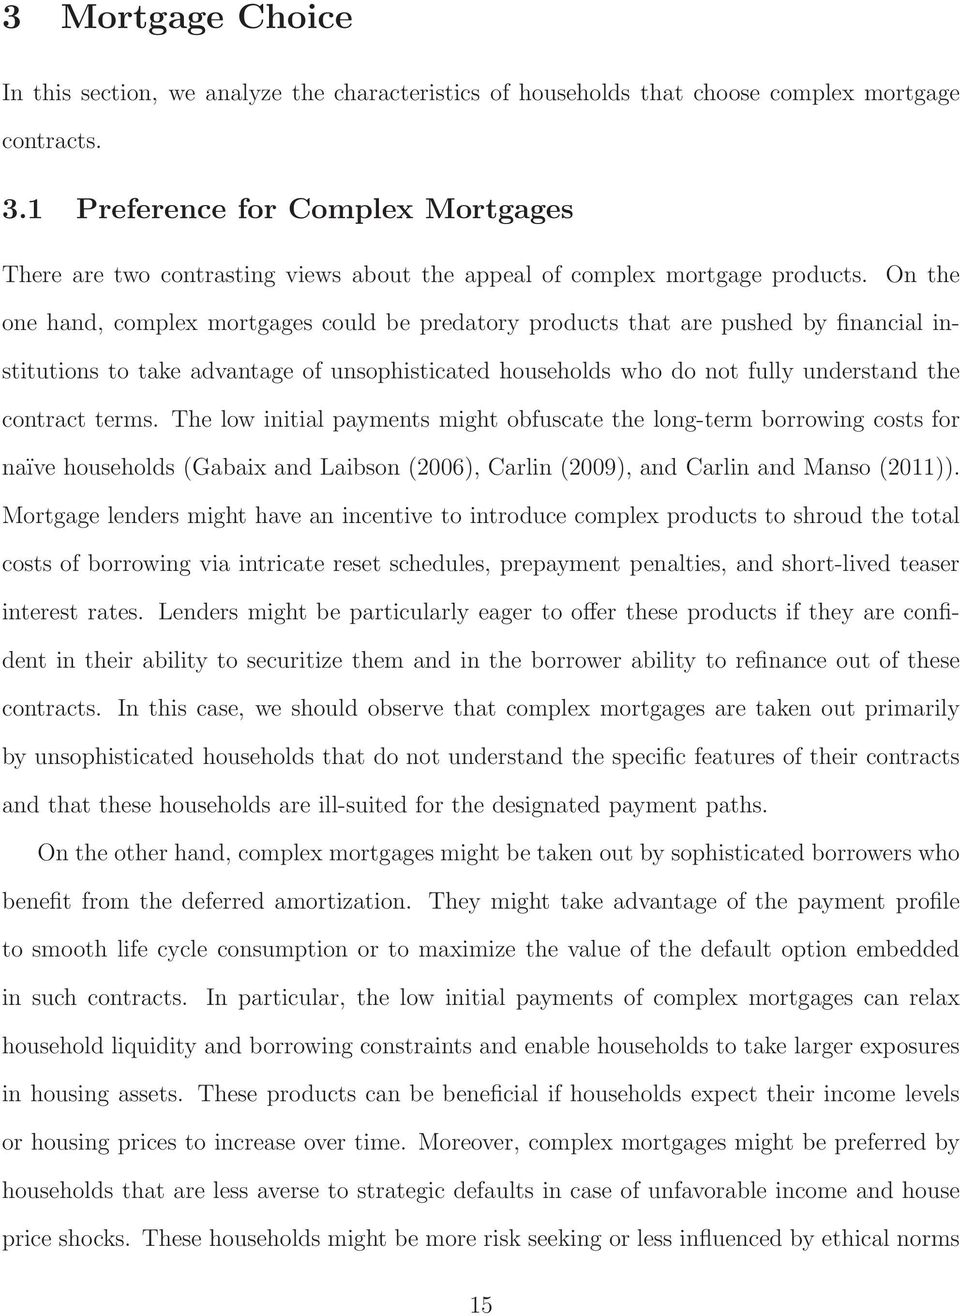 On the one hand, complex mortgages could be predatory products that are pushed by financial institutions to take advantage of unsophisticated households who do not fully understand the contract terms.